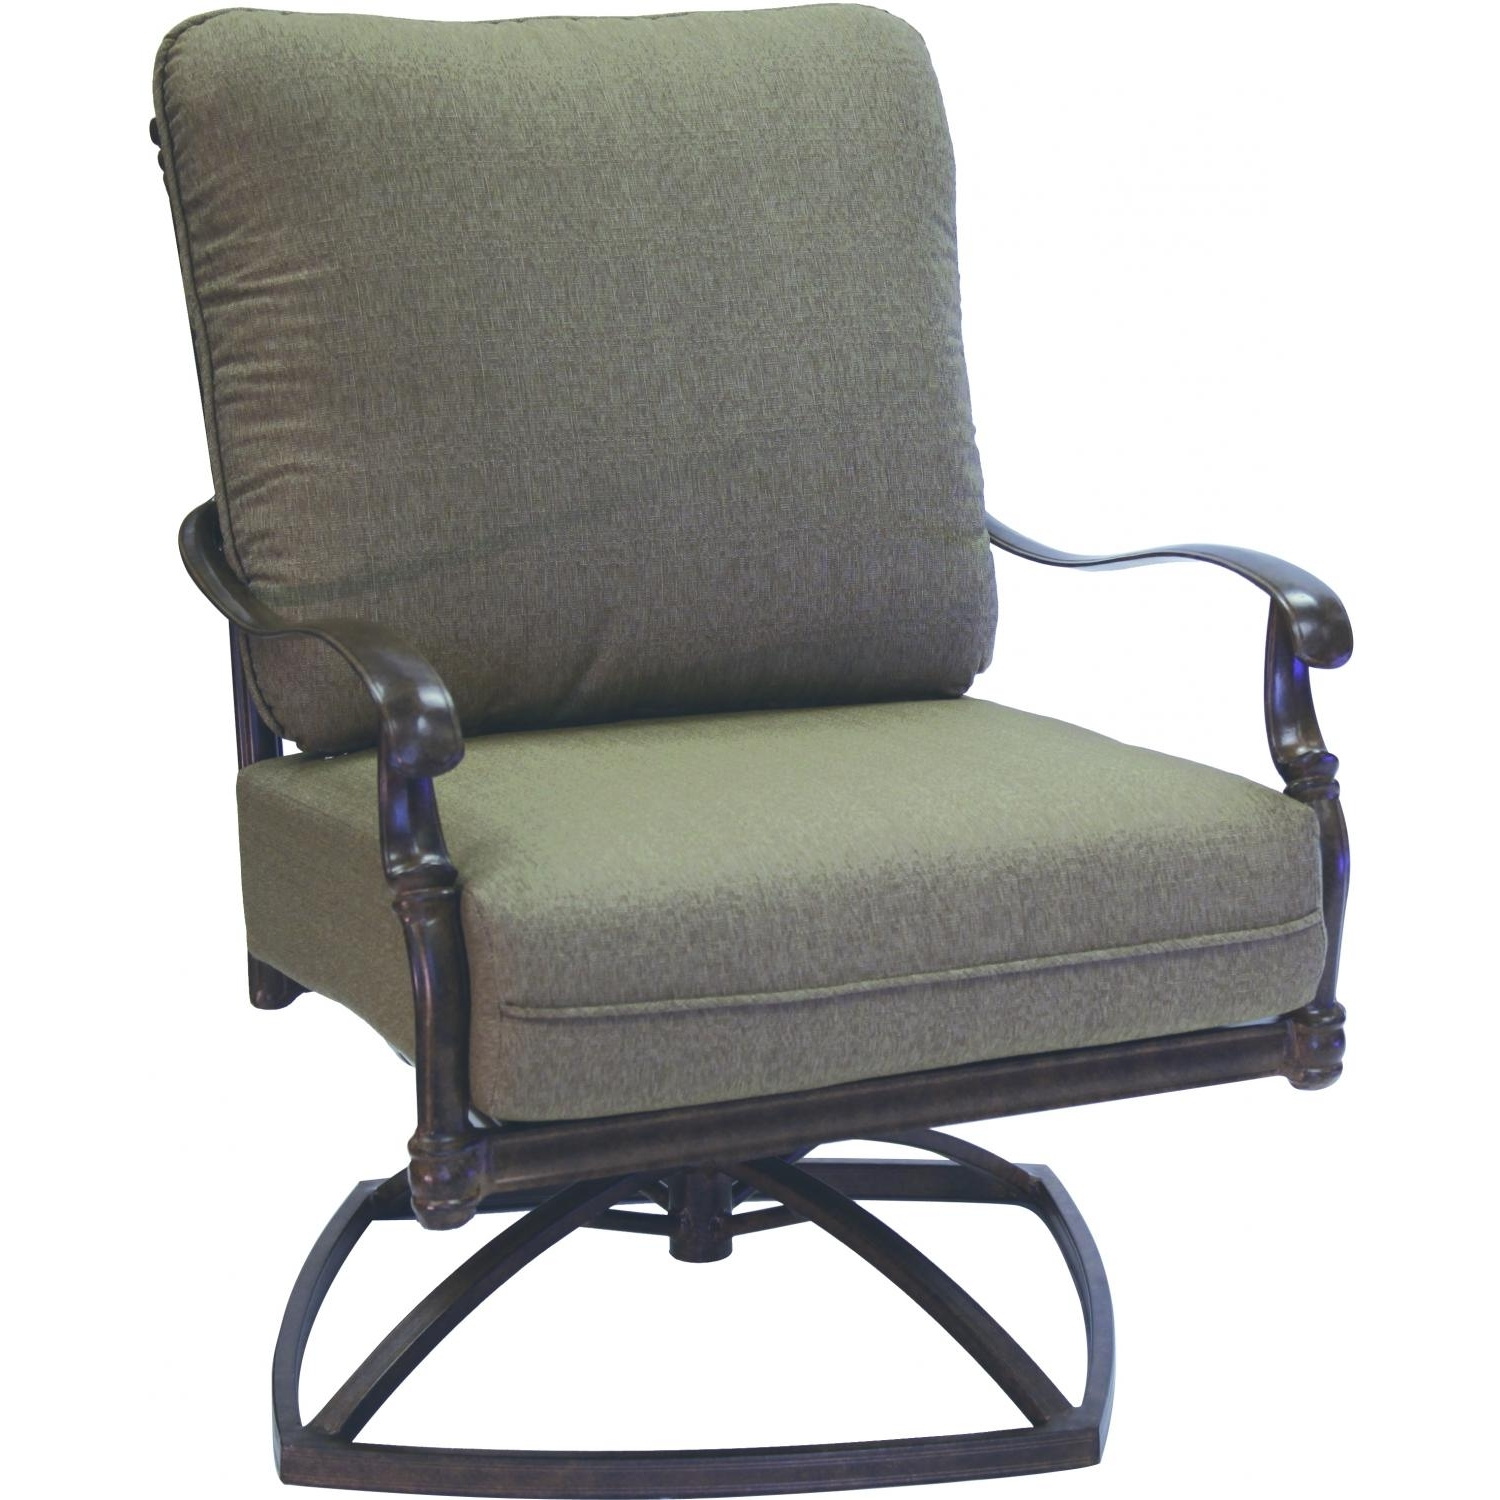 Single Outdoor Chairs Stackable Sling Back Patio Chairs Regarding Preferred Stackable Patio Rocking Chairs (View 15 of 20)